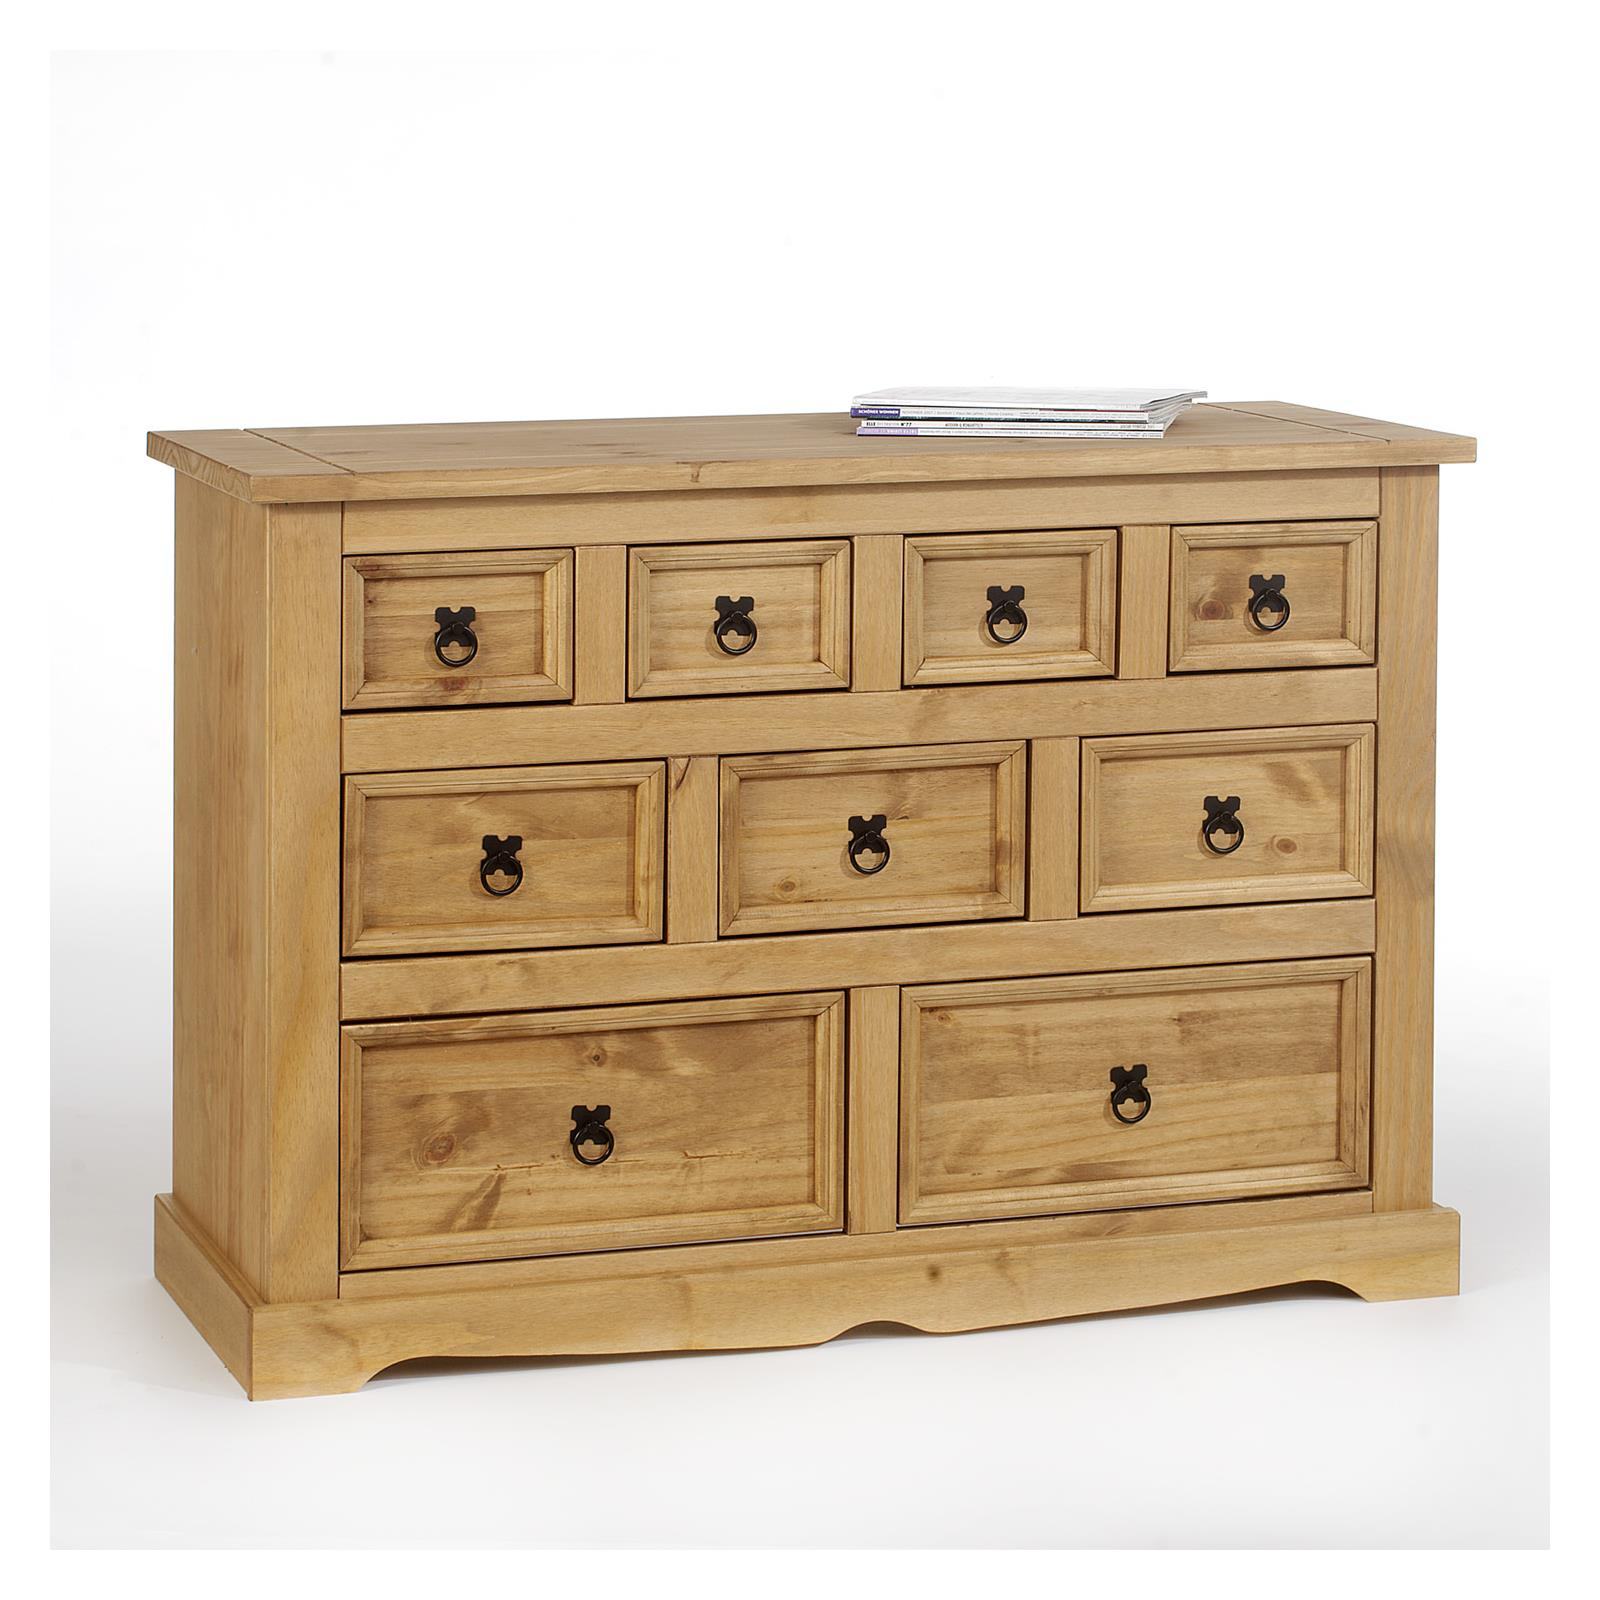 Commode en pin tequila style mexicain 9 tiroirs finition cir e mobil meubles for Table a langer commode carrefour